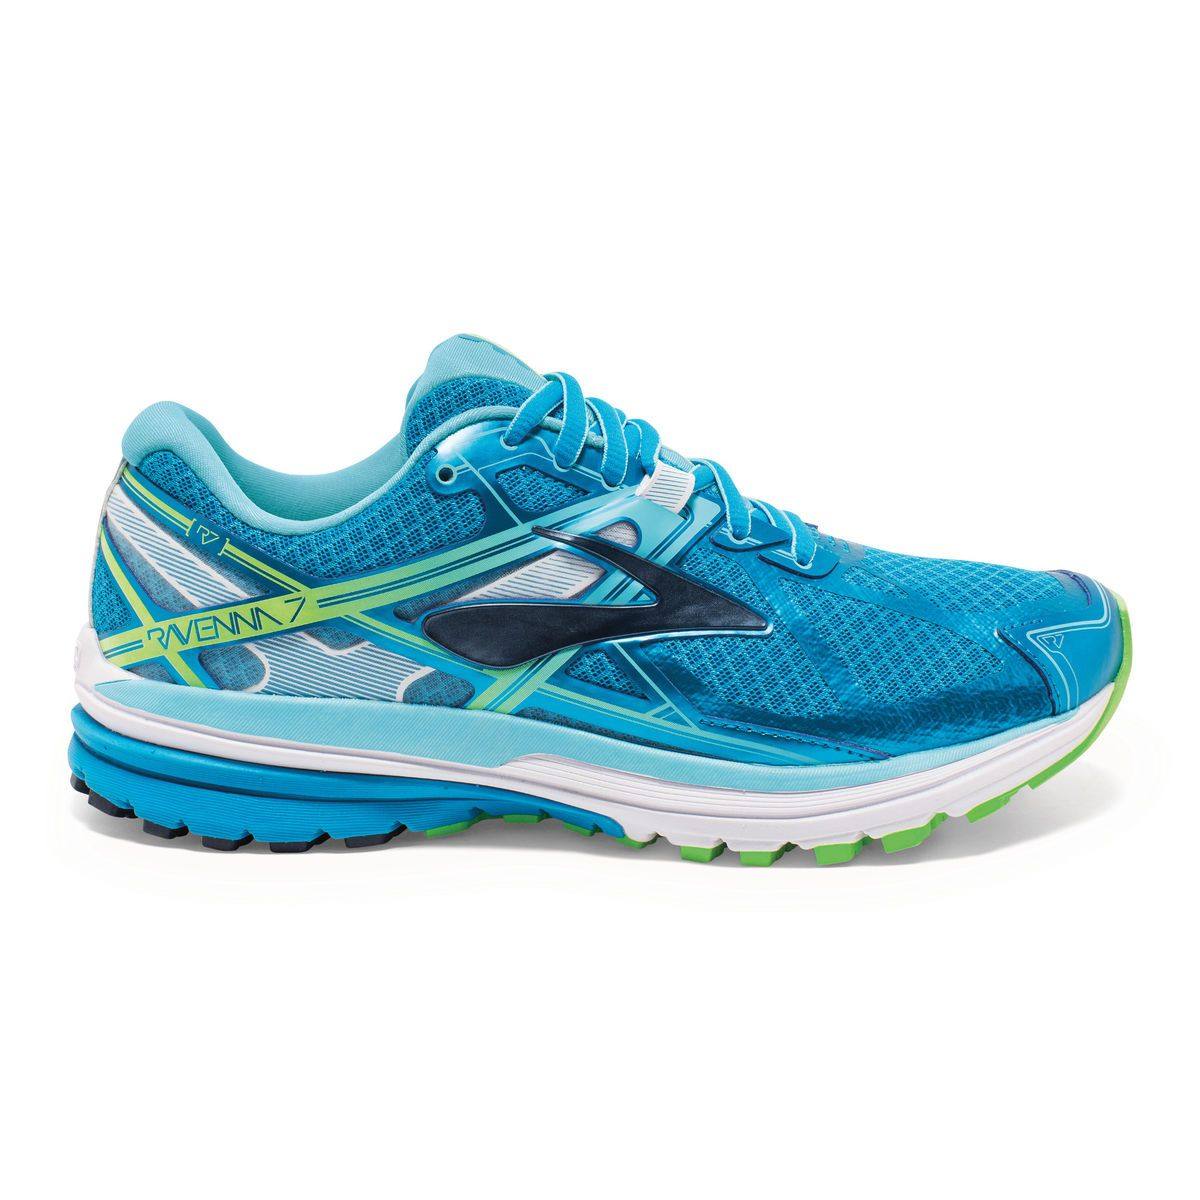 30c0ccb85f6 Brooks running shoes- Ravenna 7 - color  409